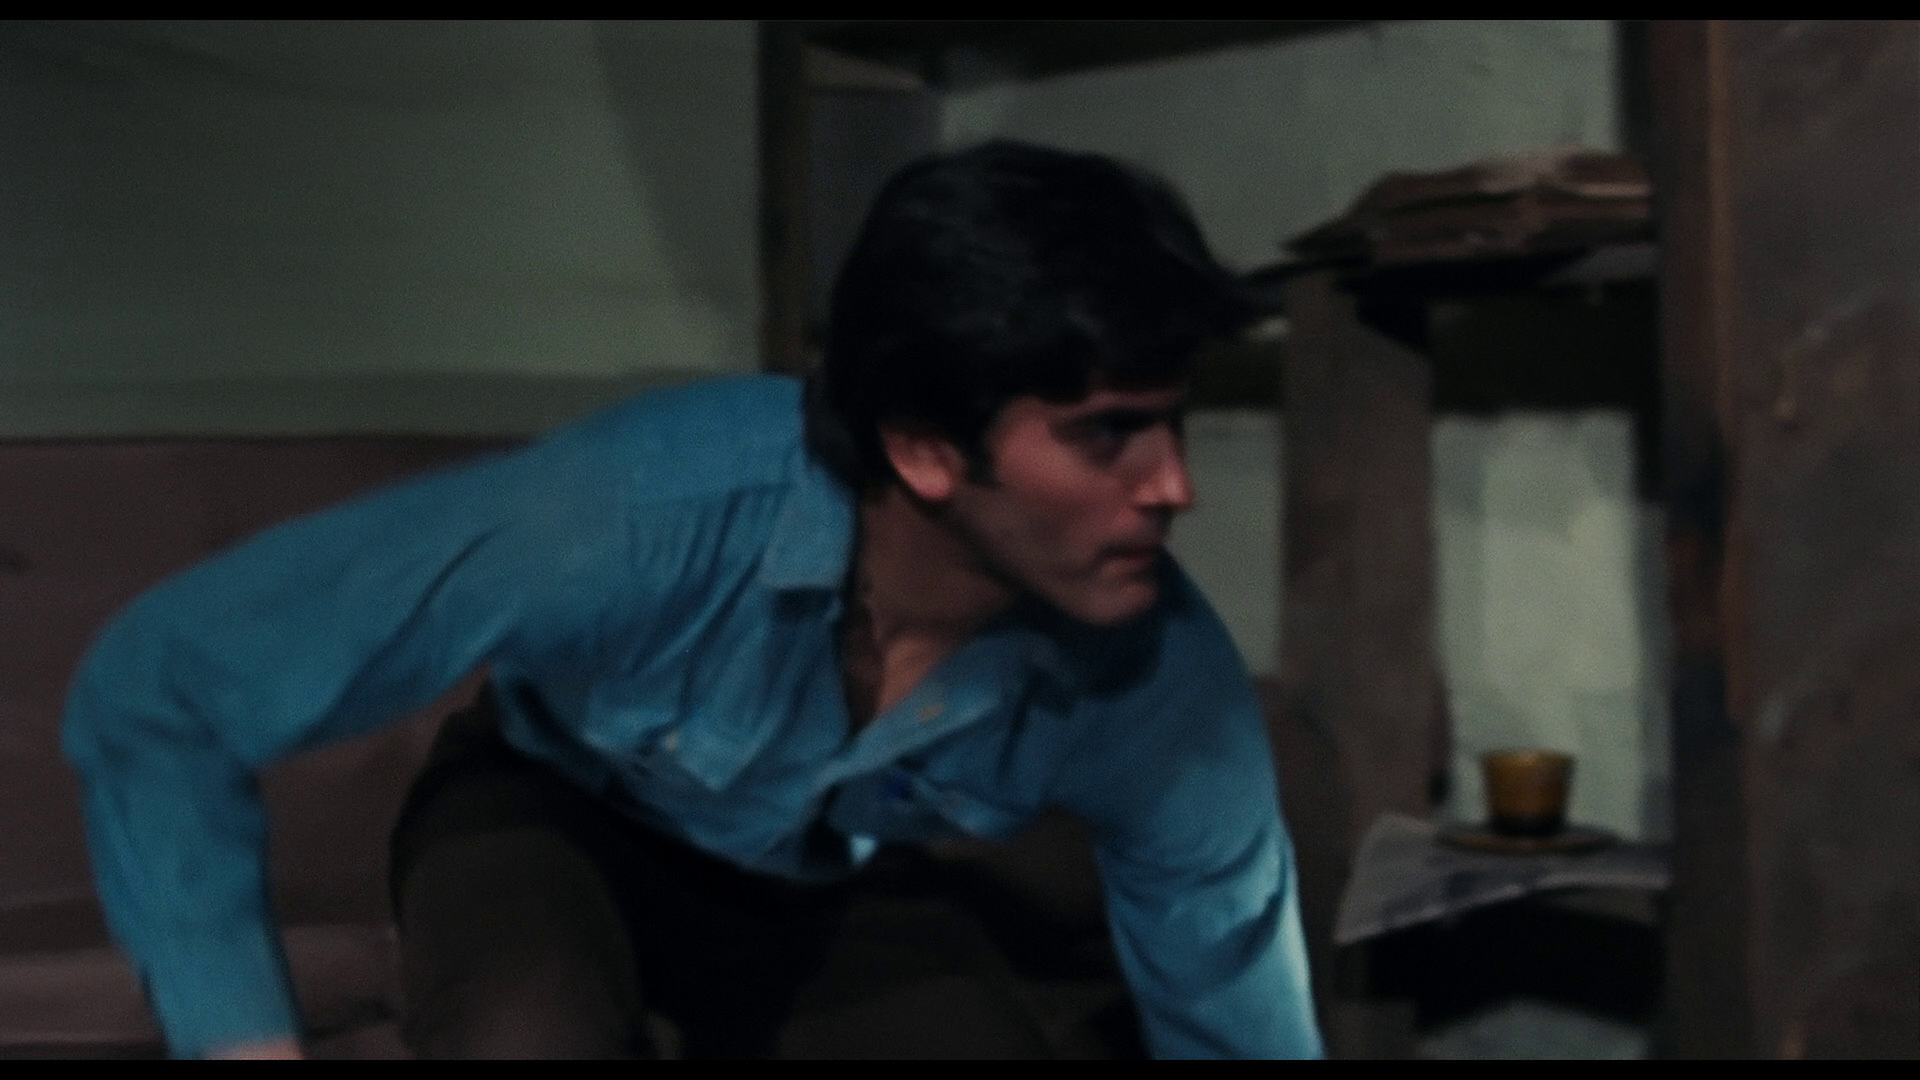 The Evil Dead 1981 GER Remastered Enhanced Widescreen BluRay REMUX 1080p AVC DTS-HD MA - BluDragon